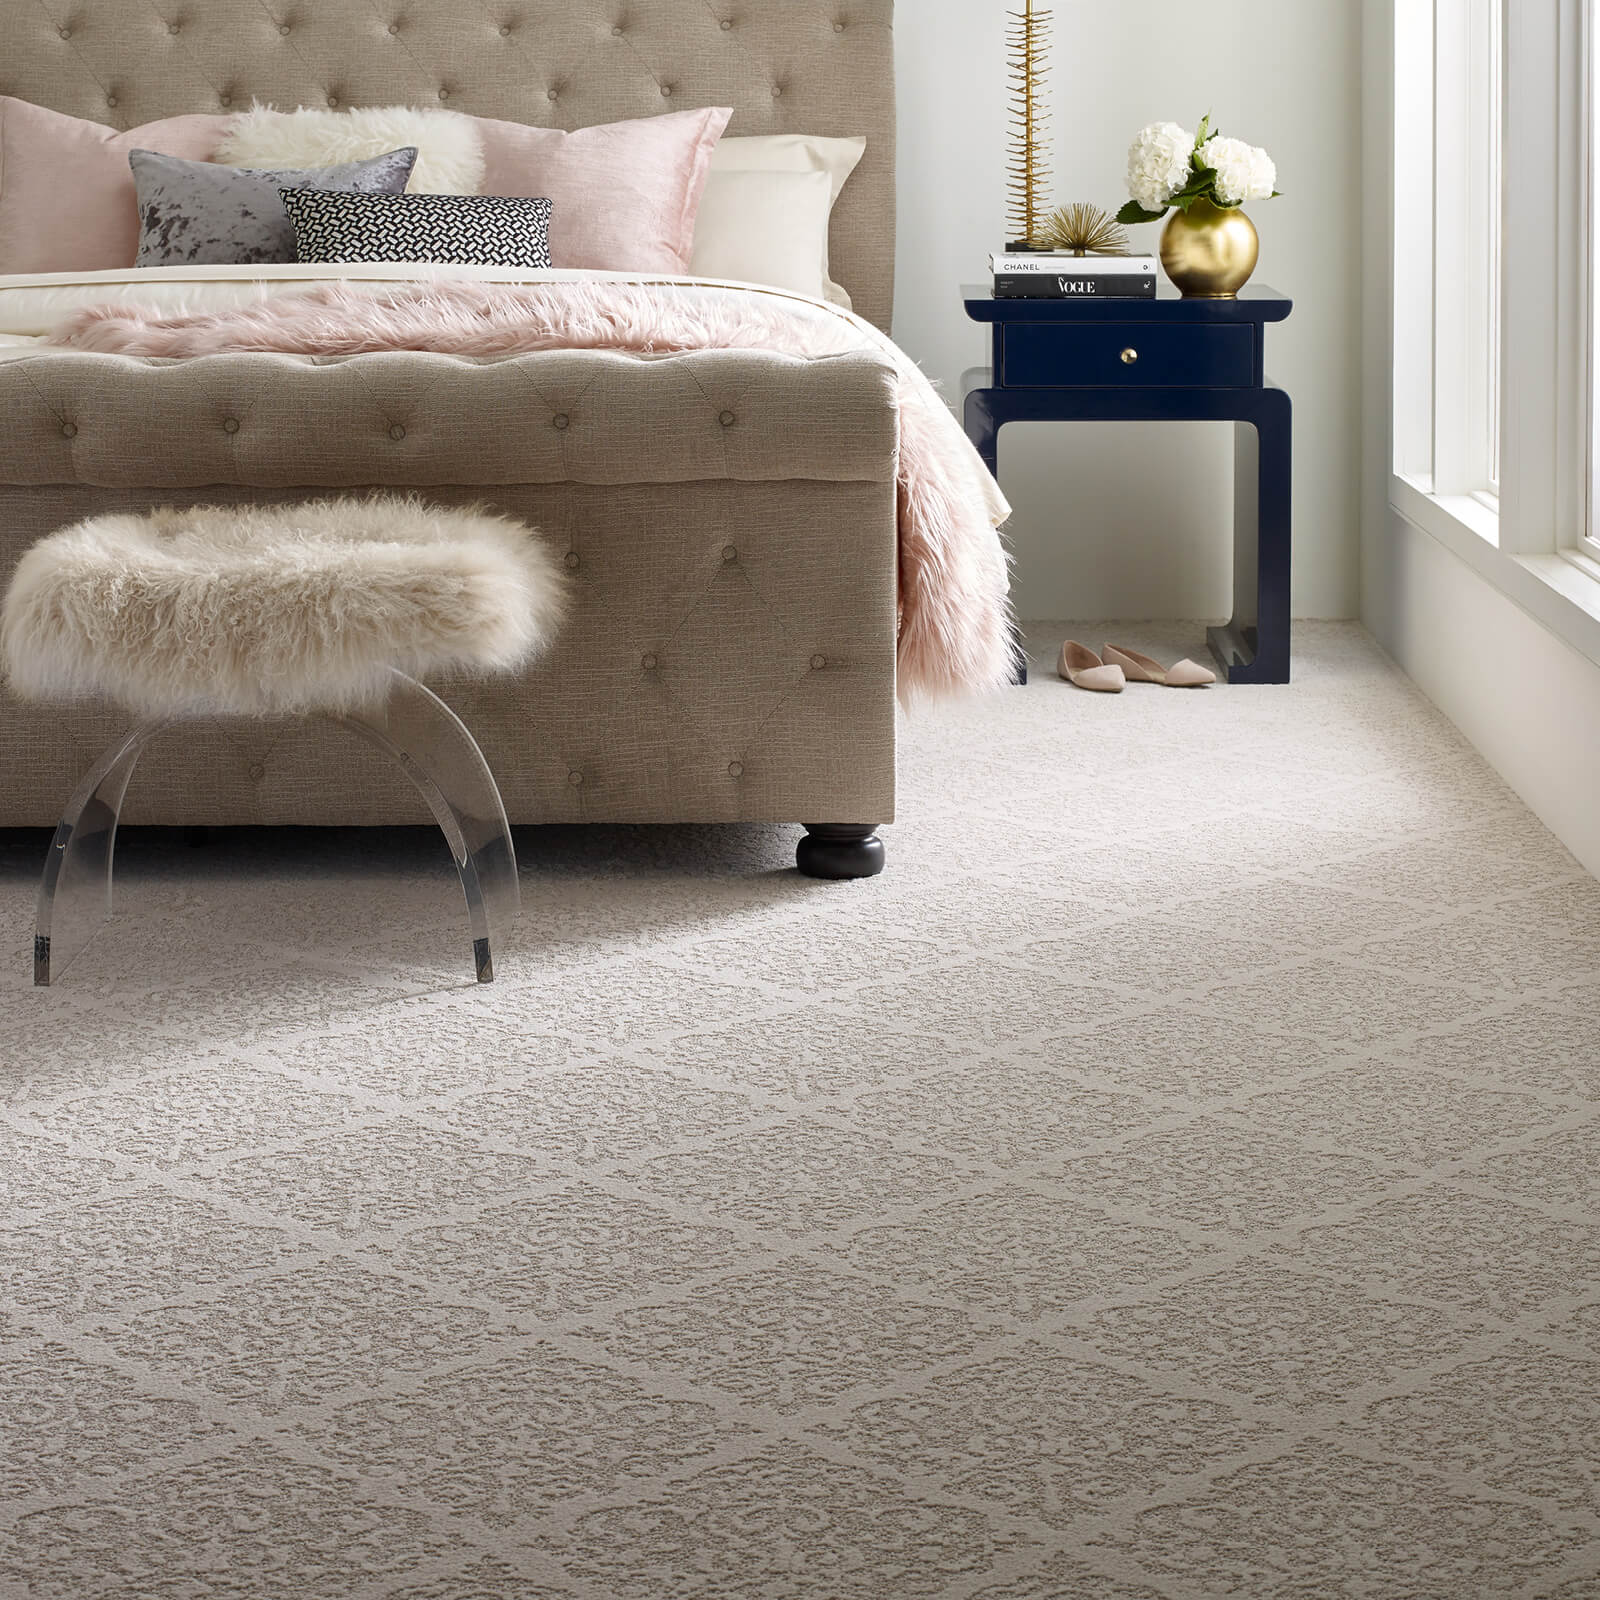 Shaw floors chateau carpet | West Michigan Carpet Center